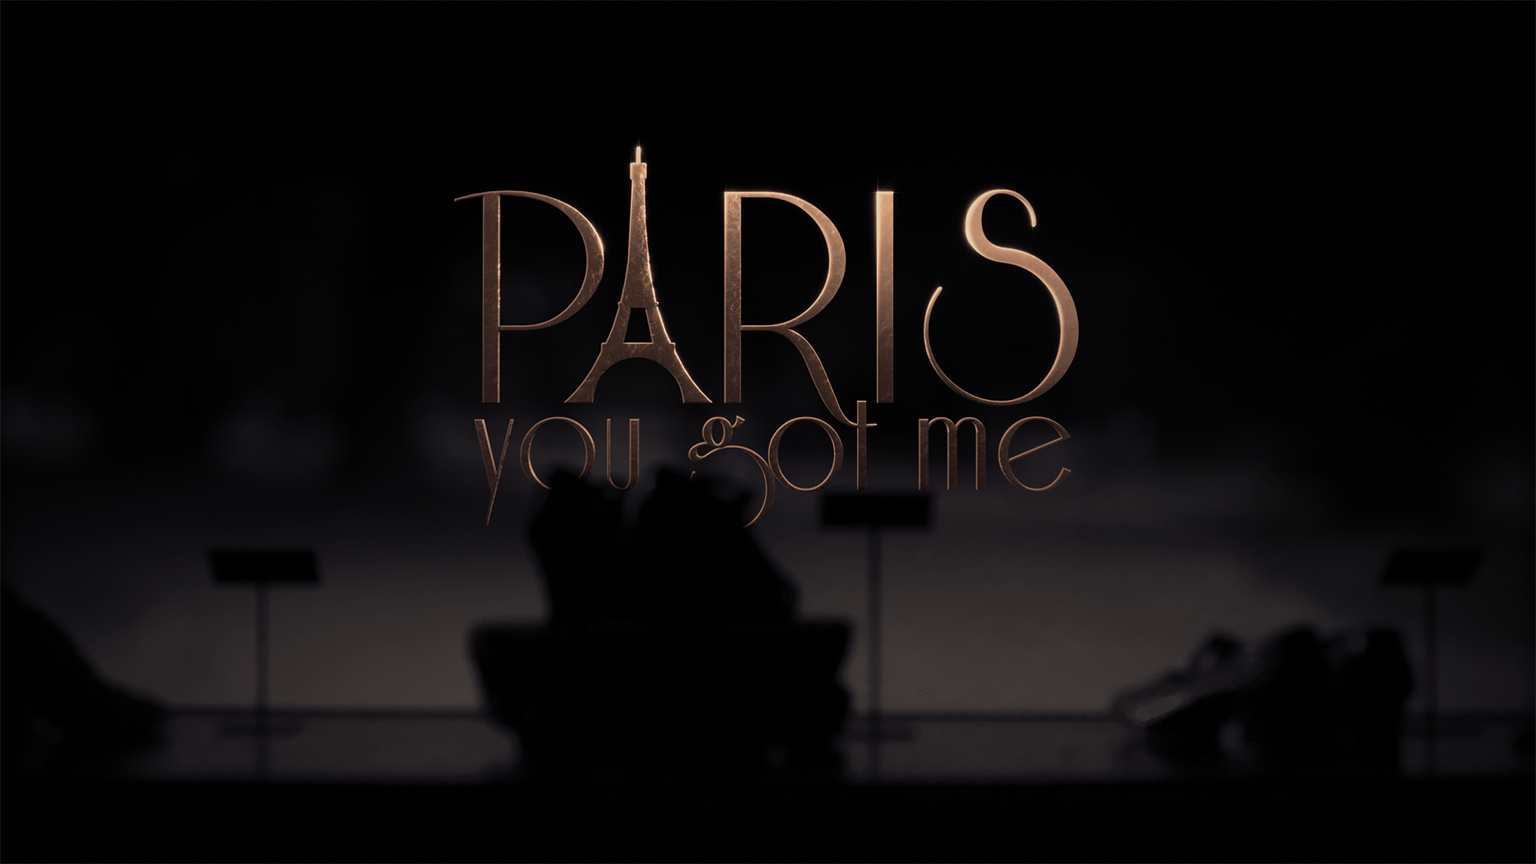 Paris You Got Me (2018) - Title Design